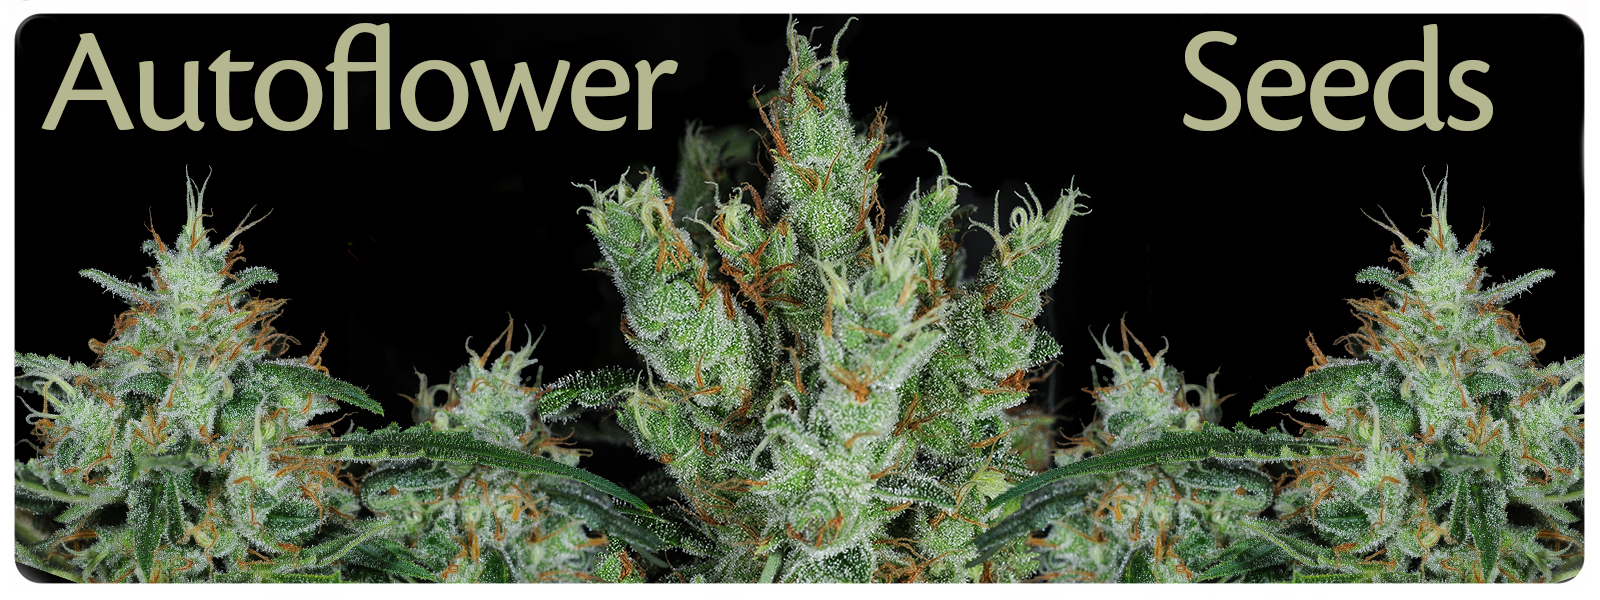 Autoflower seeds for a strong effect and harvest